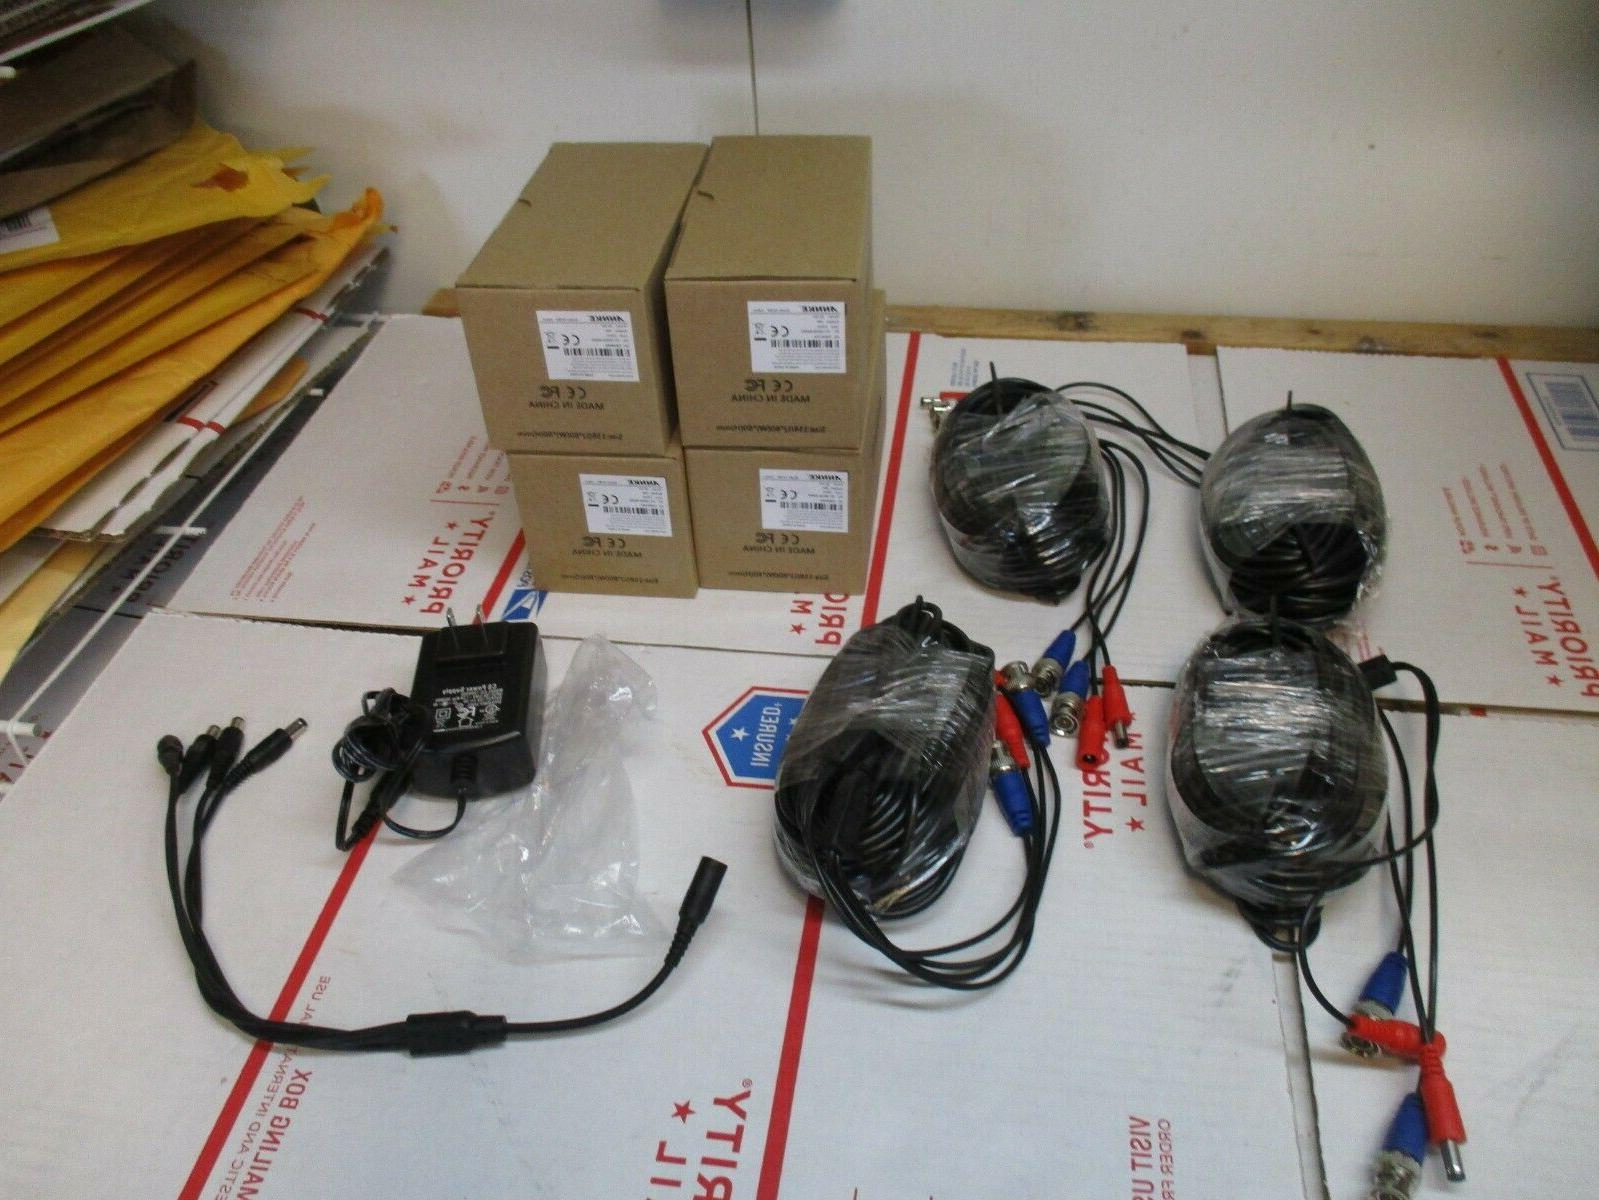 4 home security cameras dc12v with wire